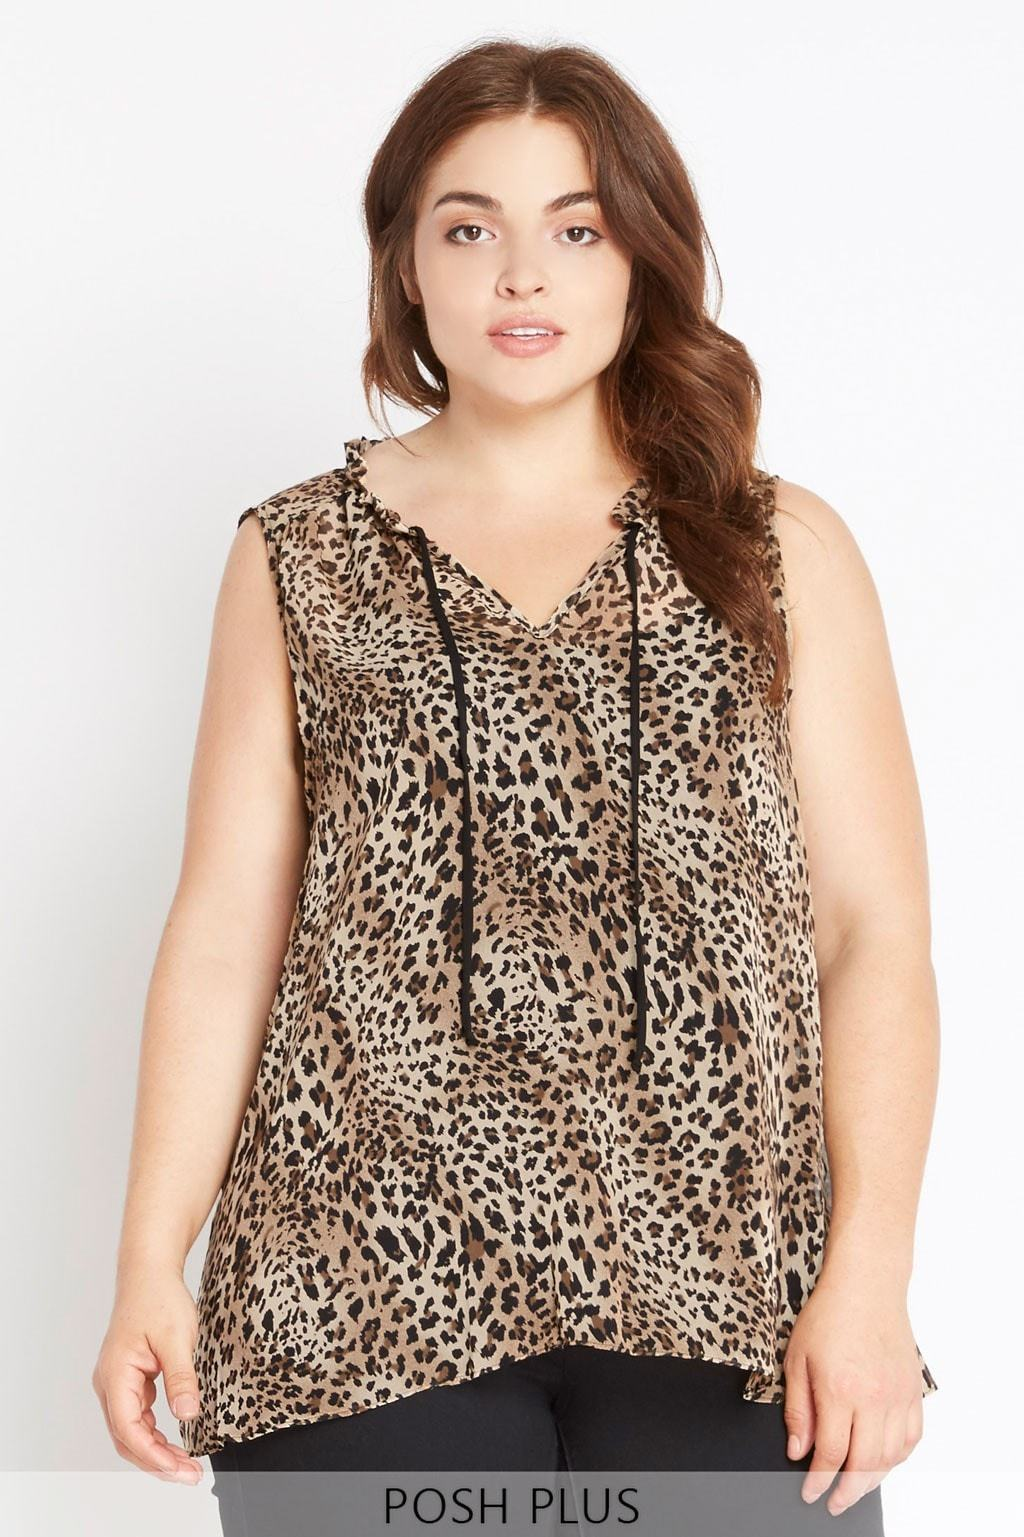 Poshsquare Plus XL / Leopard Animal Intuition Sheer Leopard Printed Top Plus Size